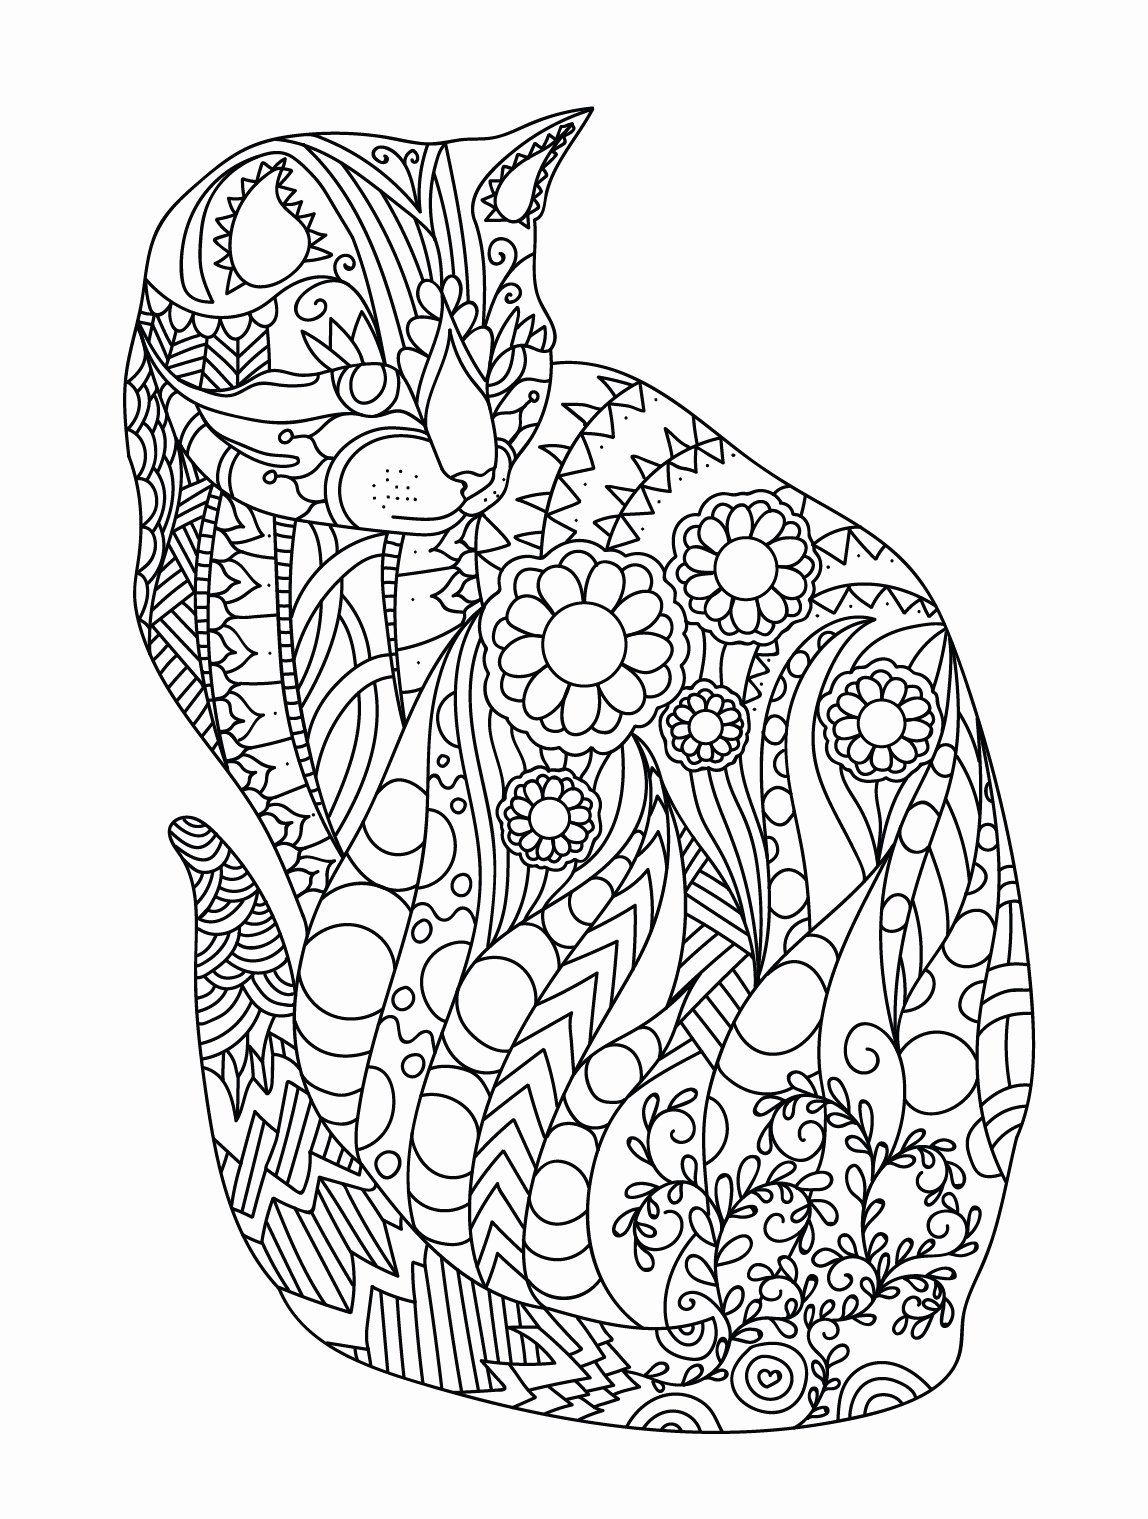 Coloring Pages Nature Animals Lovely Of Zentangled Animal Coloring Pages Sabadaphnecottage Cat Coloring Book Cat Coloring Page Emoji Coloring Pages